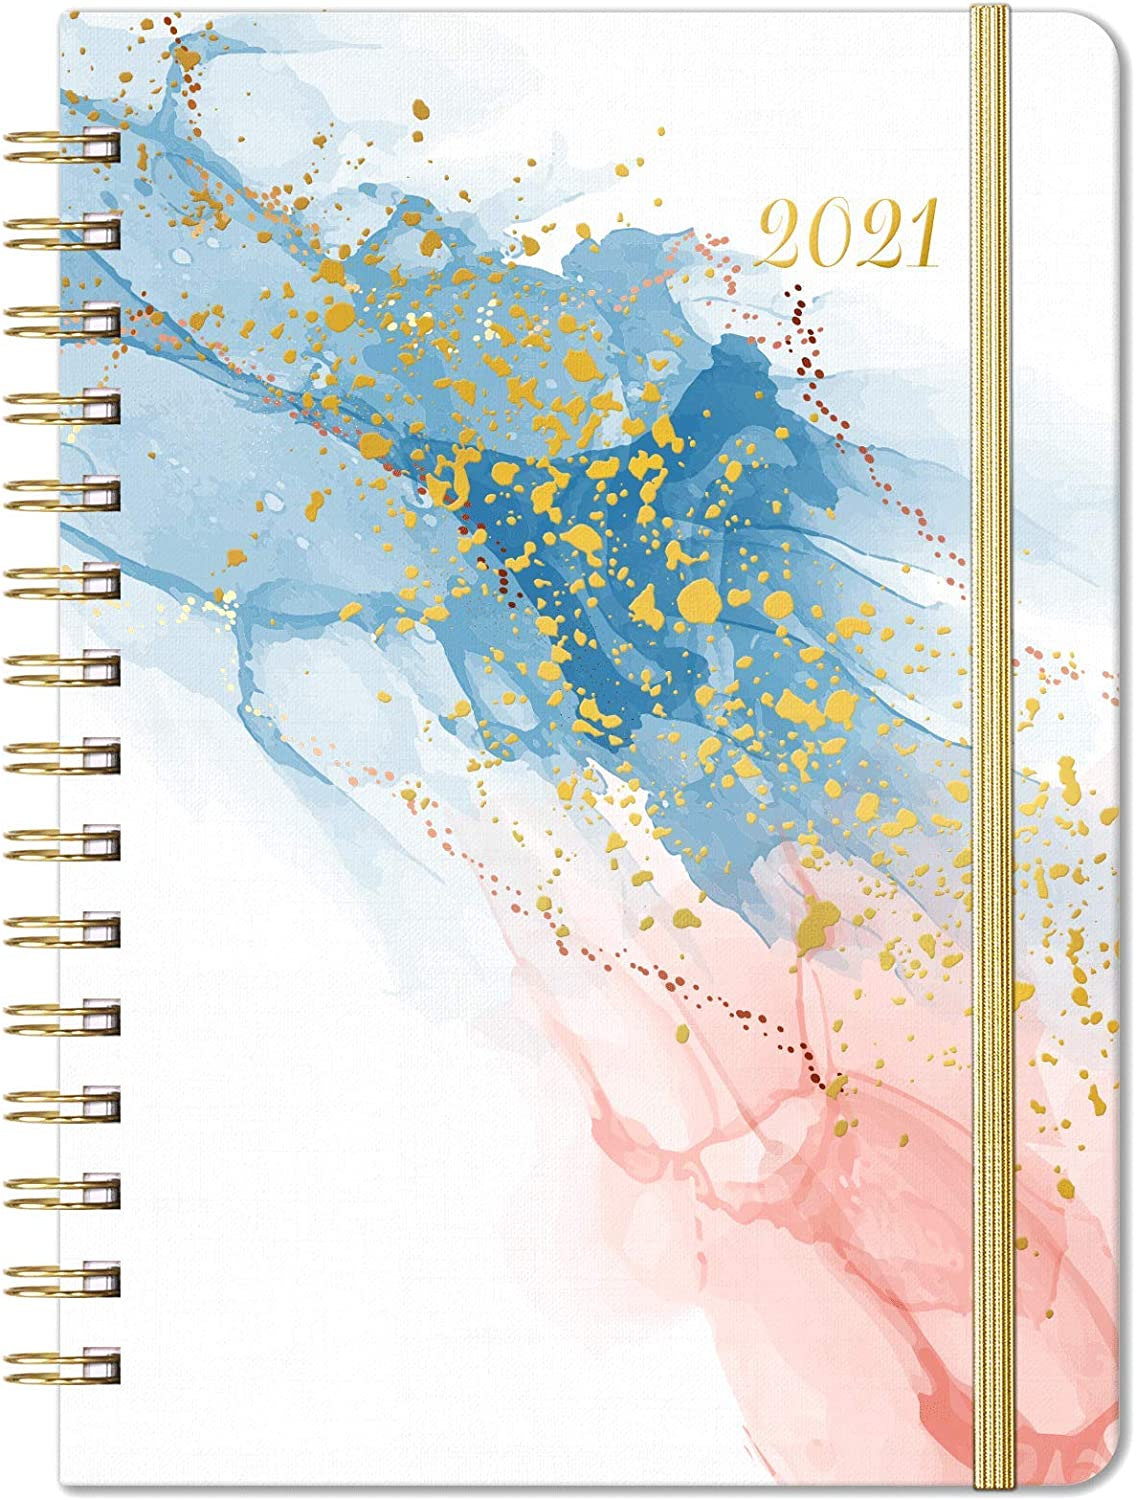 "2021 Planner – Weekly Monthly Planner 2021 for January 2021 – December 2021, 6.4""x 8.5"", Flexible Cover Planner with Elastic Closure, Coated Tabs, Inner Pocket"